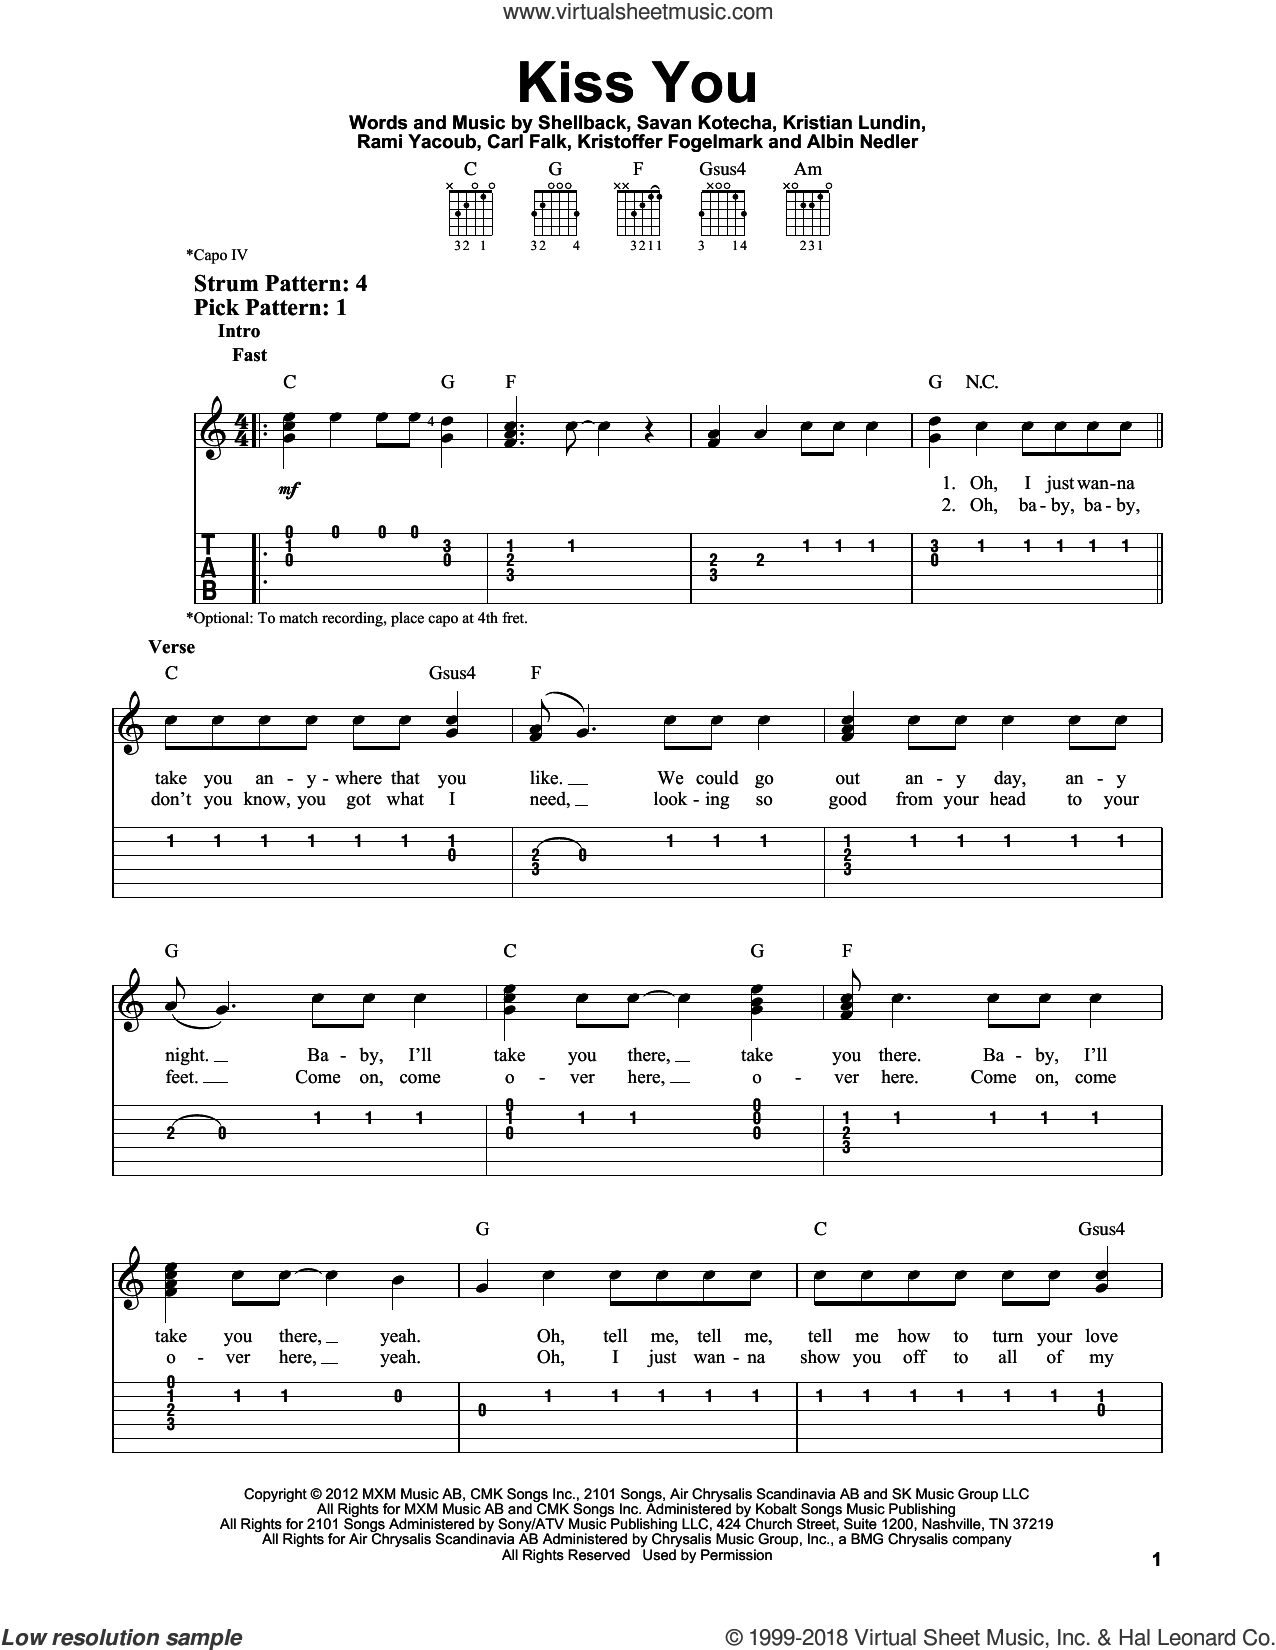 Kiss You sheet music for guitar solo (easy tablature) by One Direction, Albin Nedler, Carl Falk, Kristian Lundin, Kristoffer Fogelmark, Rami, Savan Kotecha and Shellback, easy guitar (easy tablature)